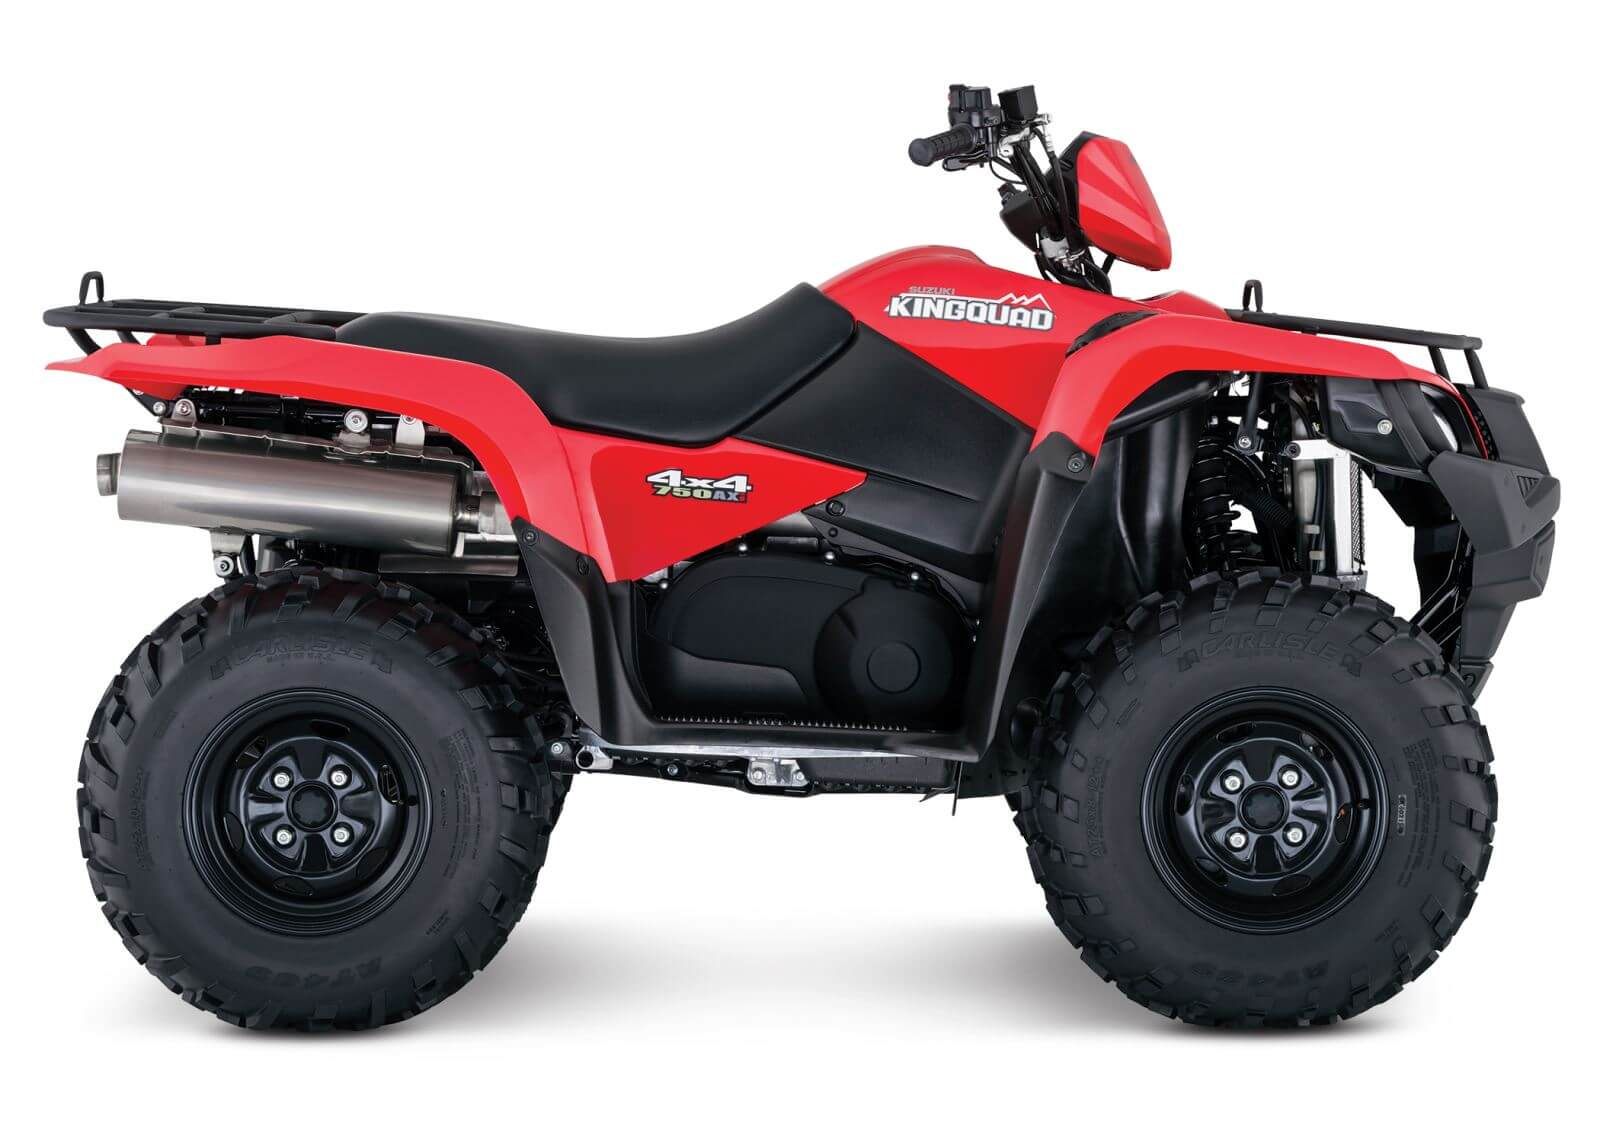 And Style Making It The Perfect Choice For Young Atv Riders To Learn On Msrp 2 949 Available In Black Yellow Dealers July 2017